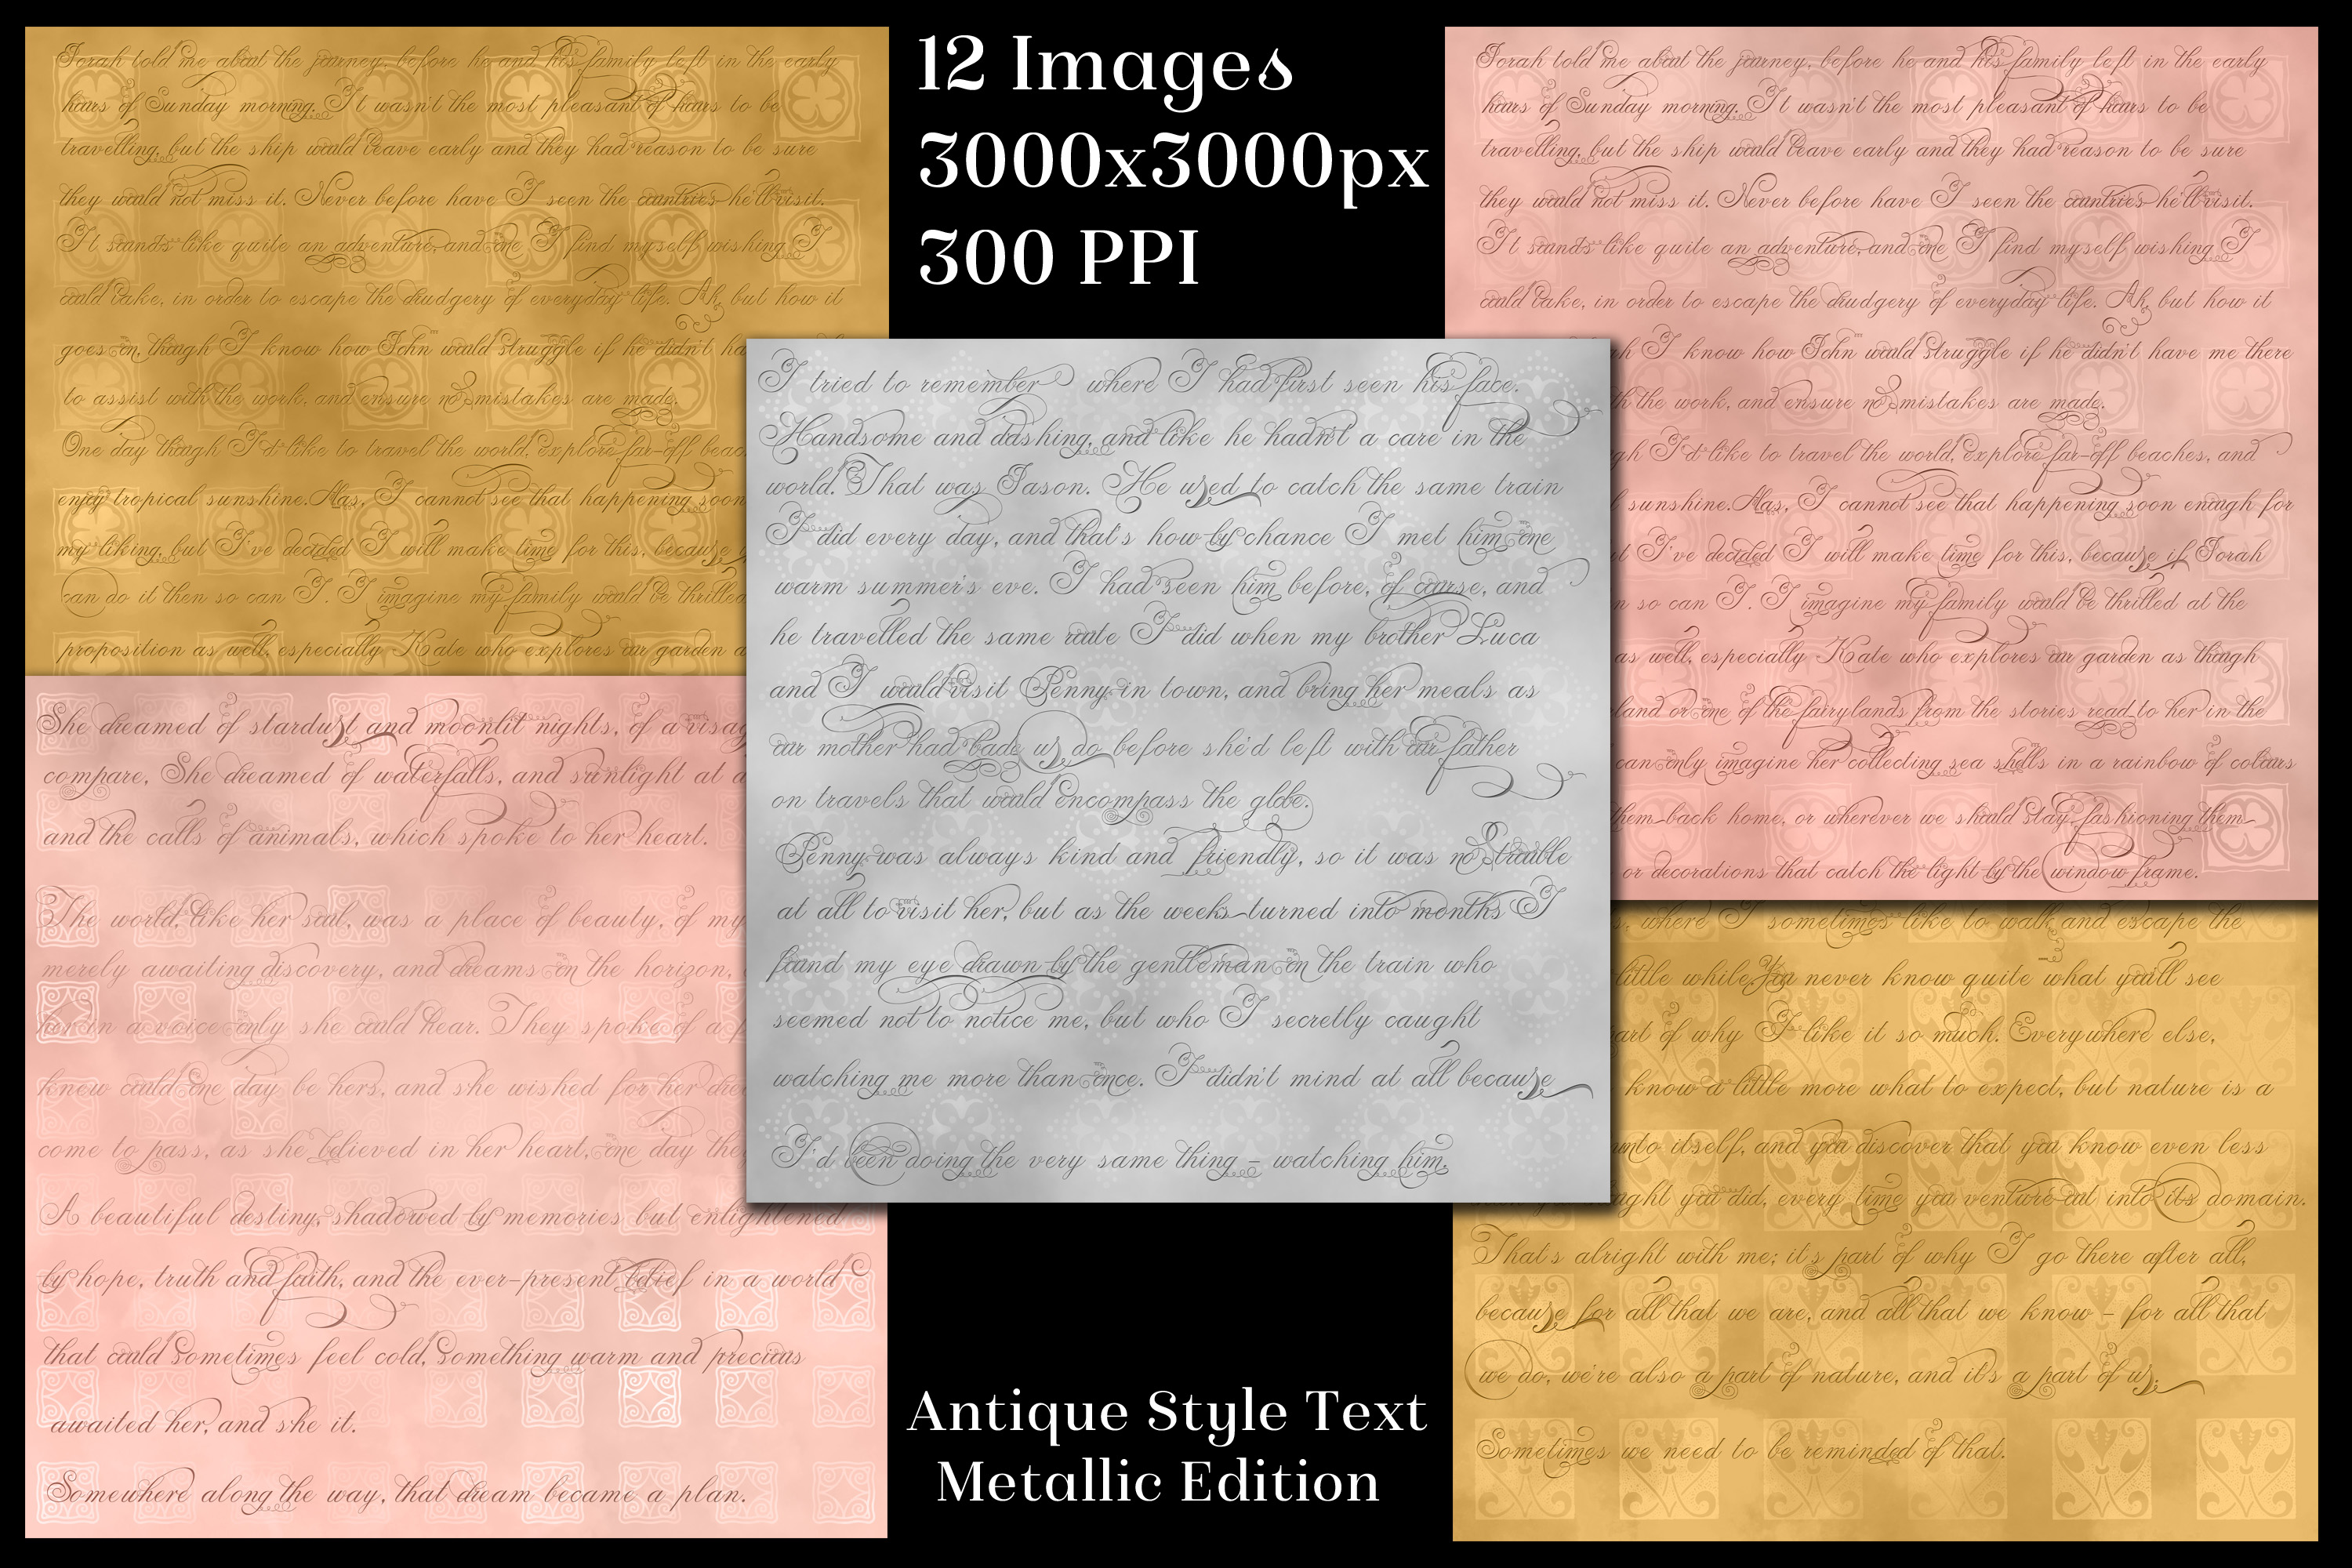 Antique Style Text Backgrounds Metallic Edition - 12 Images example image 2